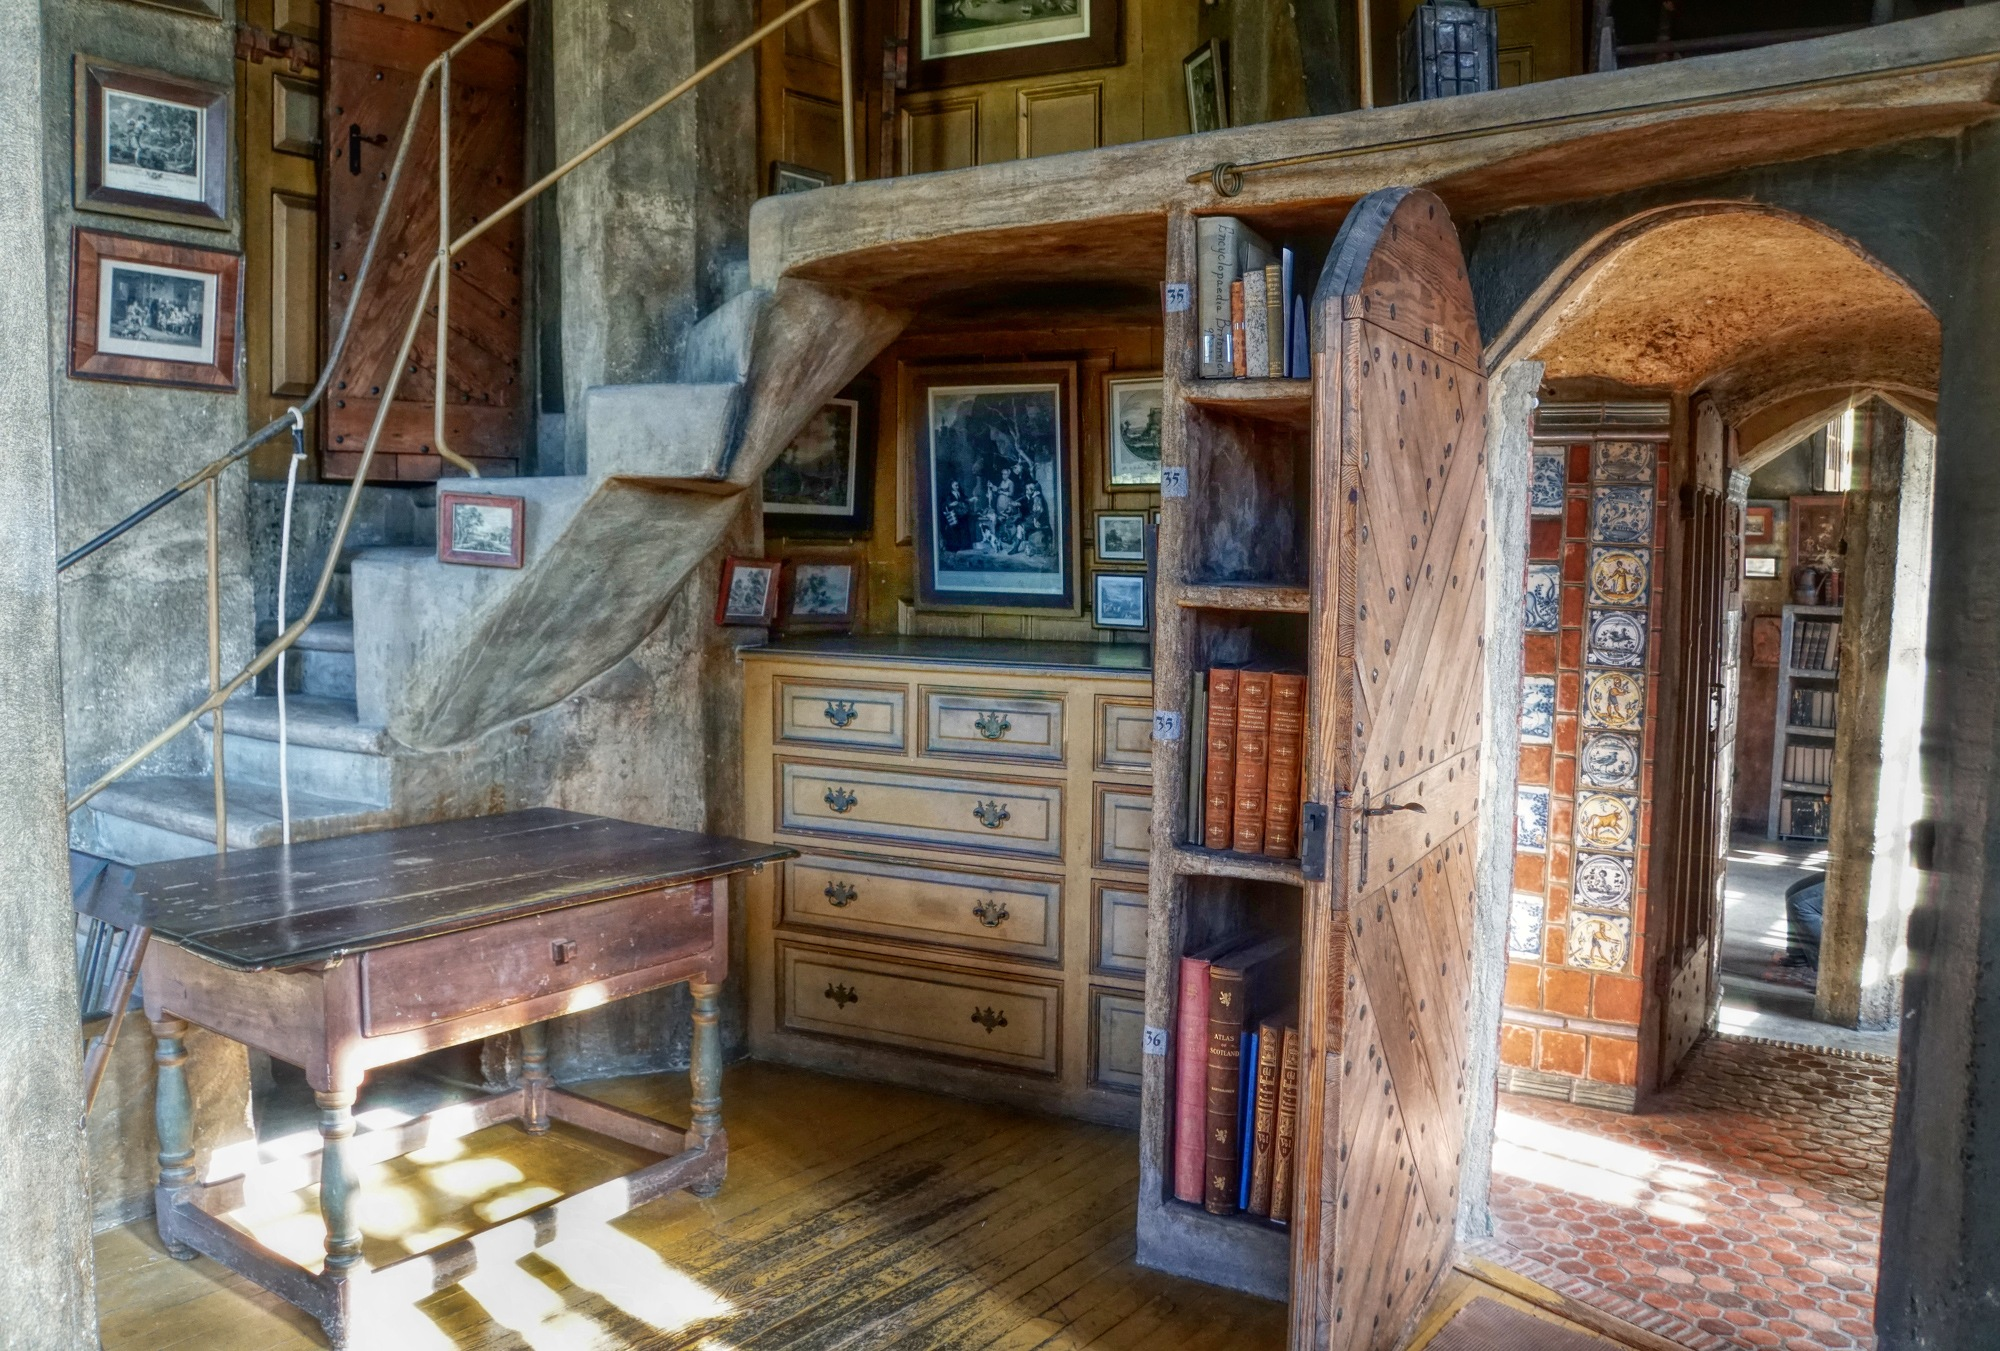 Fonthill Castle Interior 2 by mgeier